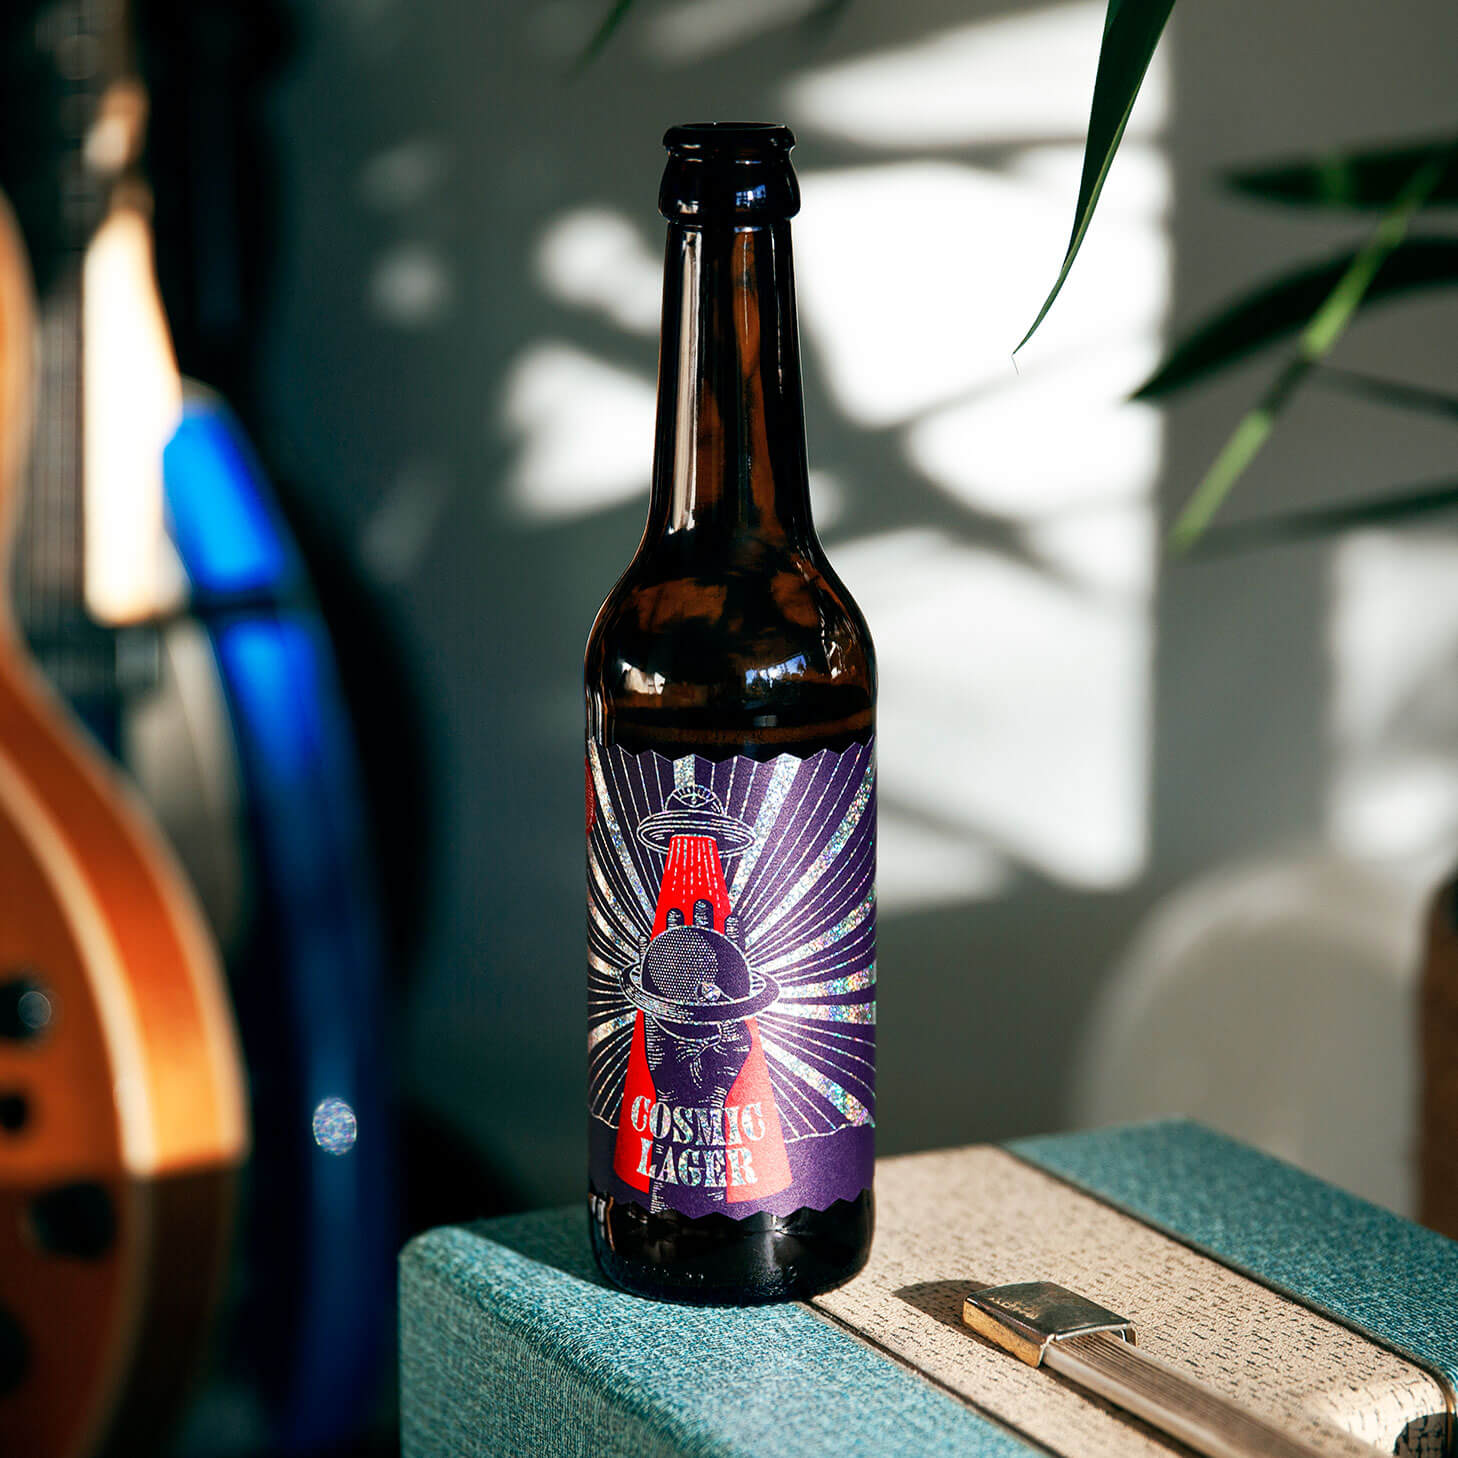 Bach's Cosmic Lager